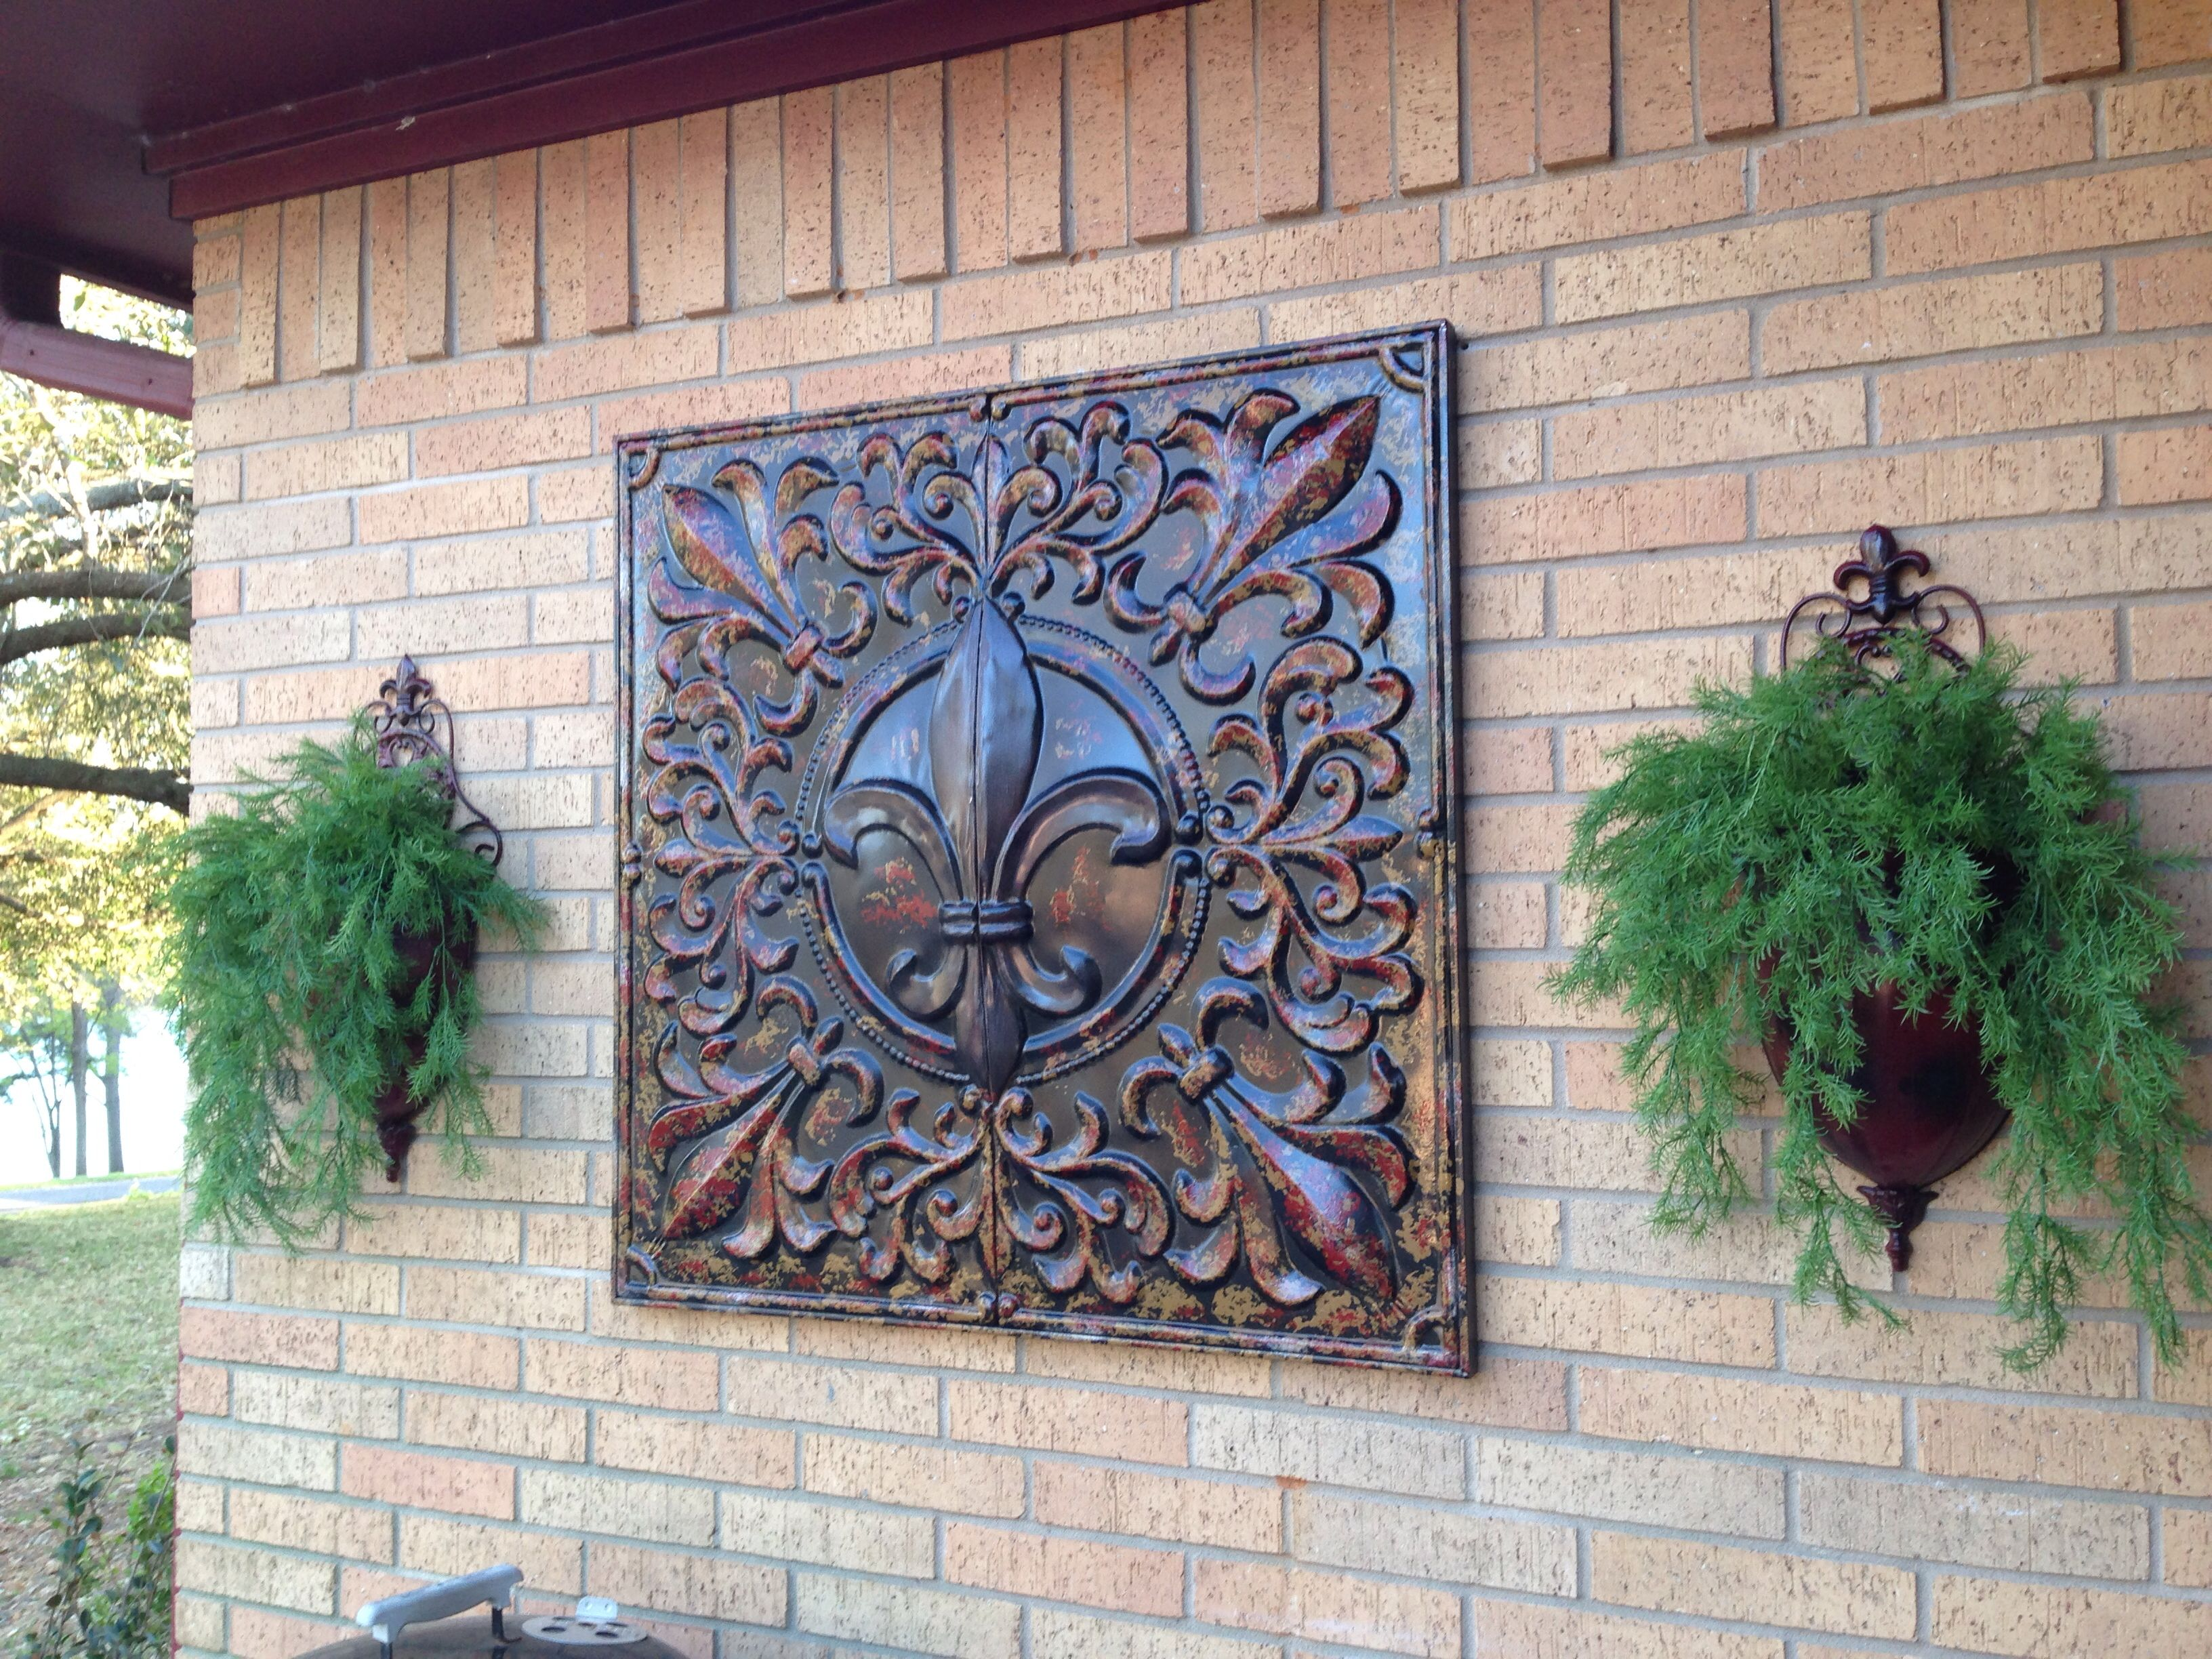 Wall Decor The Brick : Fleur d lis metal art bought hobby lobby for off